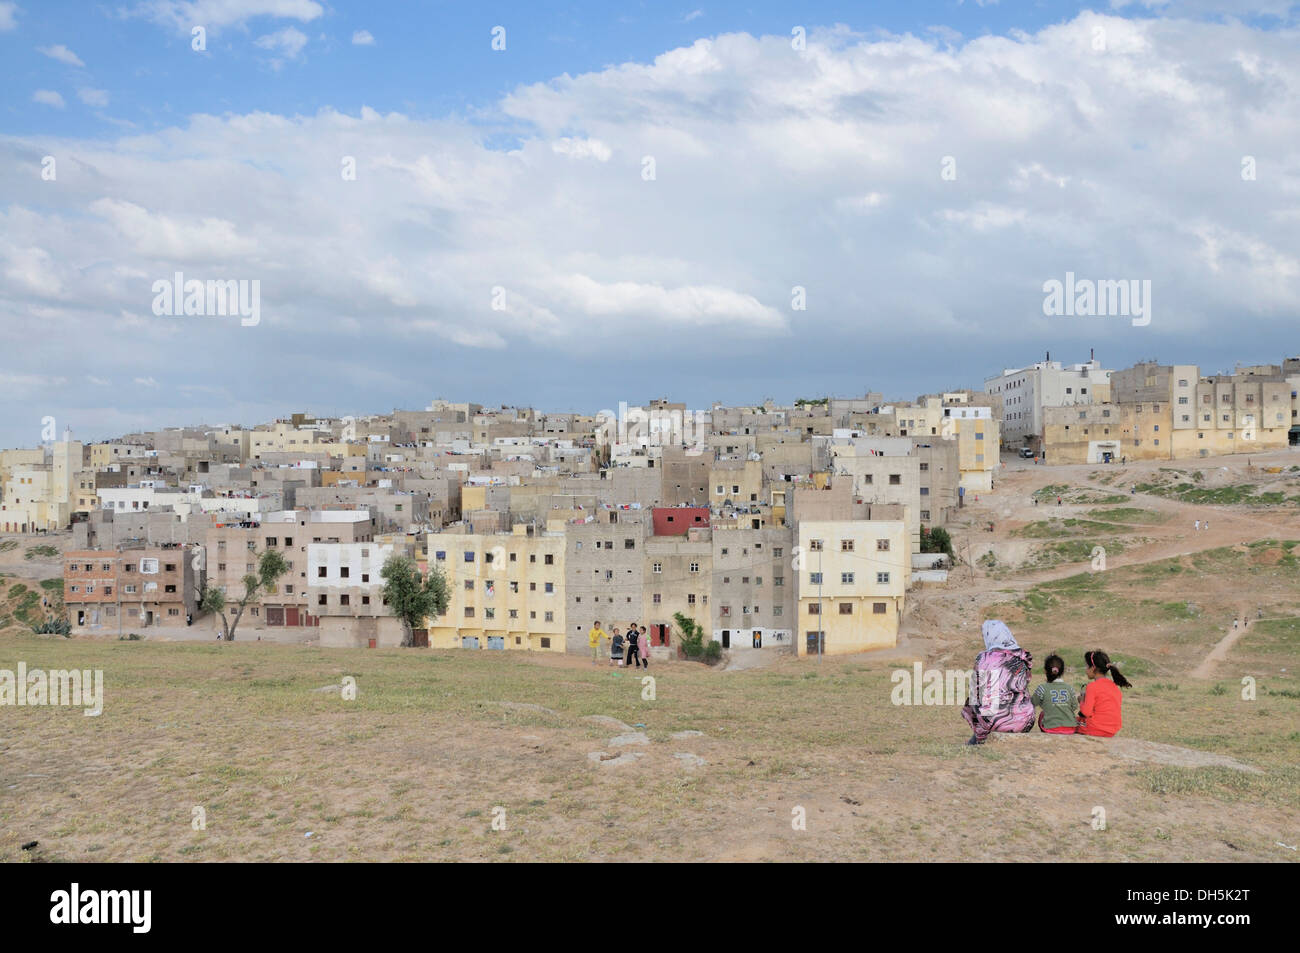 Houses and flats of the poorer population, settlement outside of Fez, Morocco, Africa - Stock Image